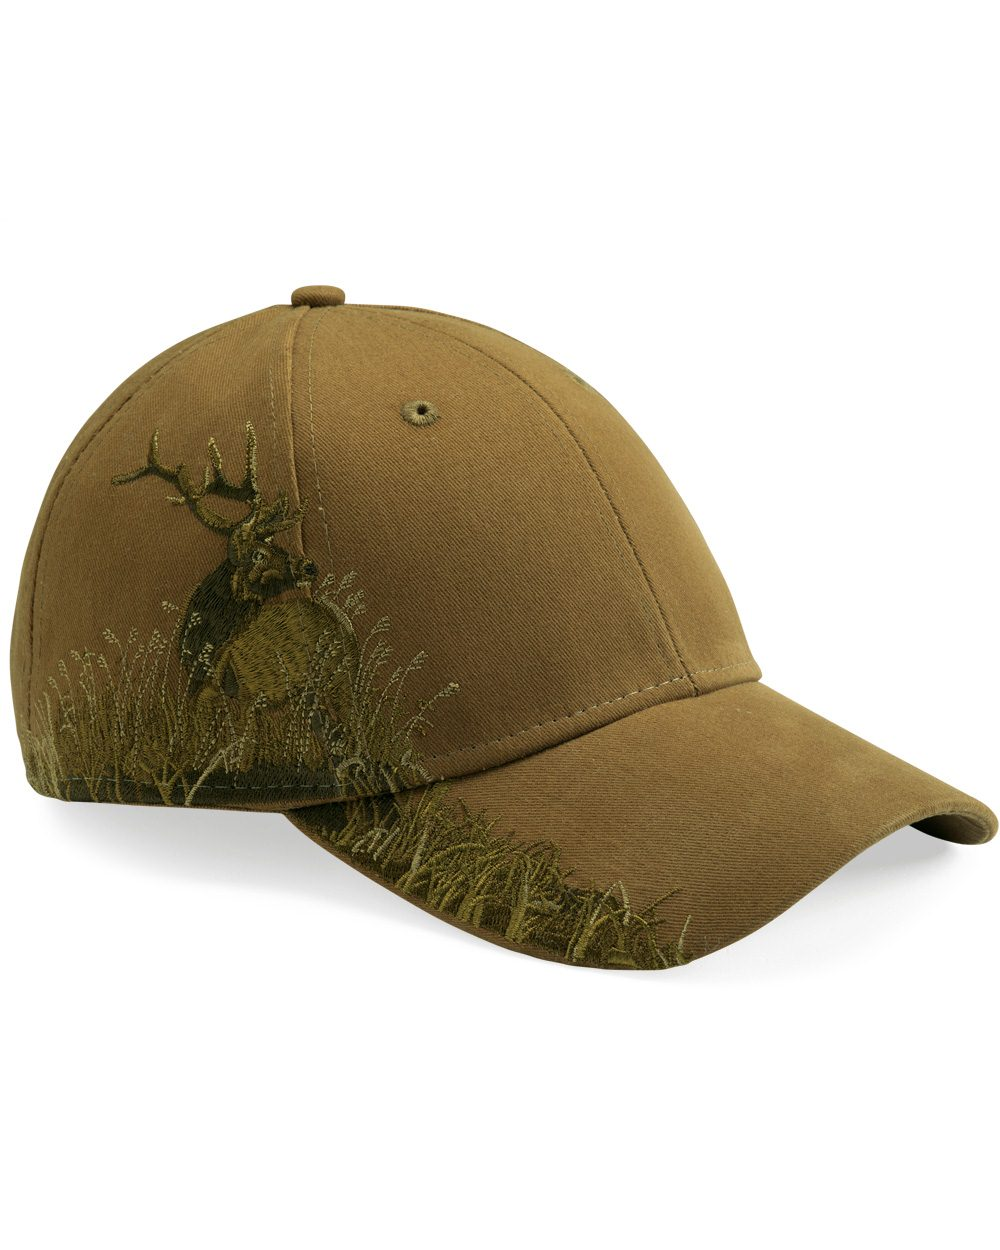 DRI DUCK Wildlife Series Elk Cap - 3259